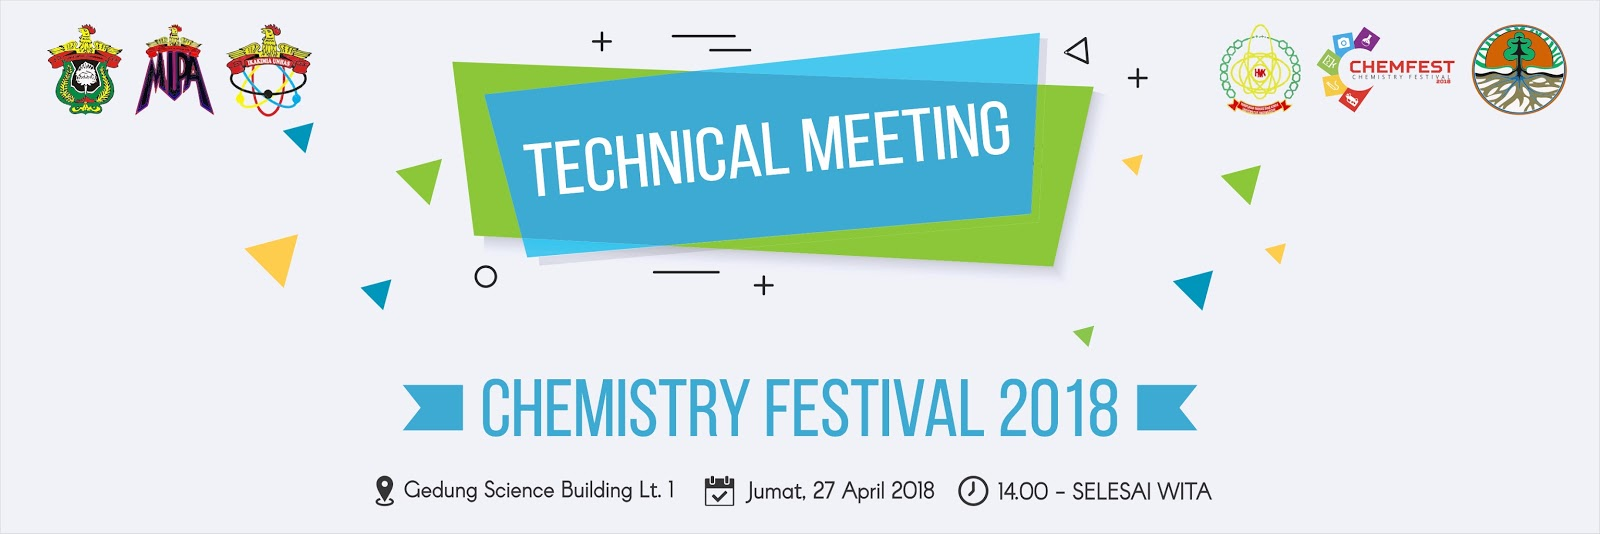 Technical Meeting Chemistry Festival 2018